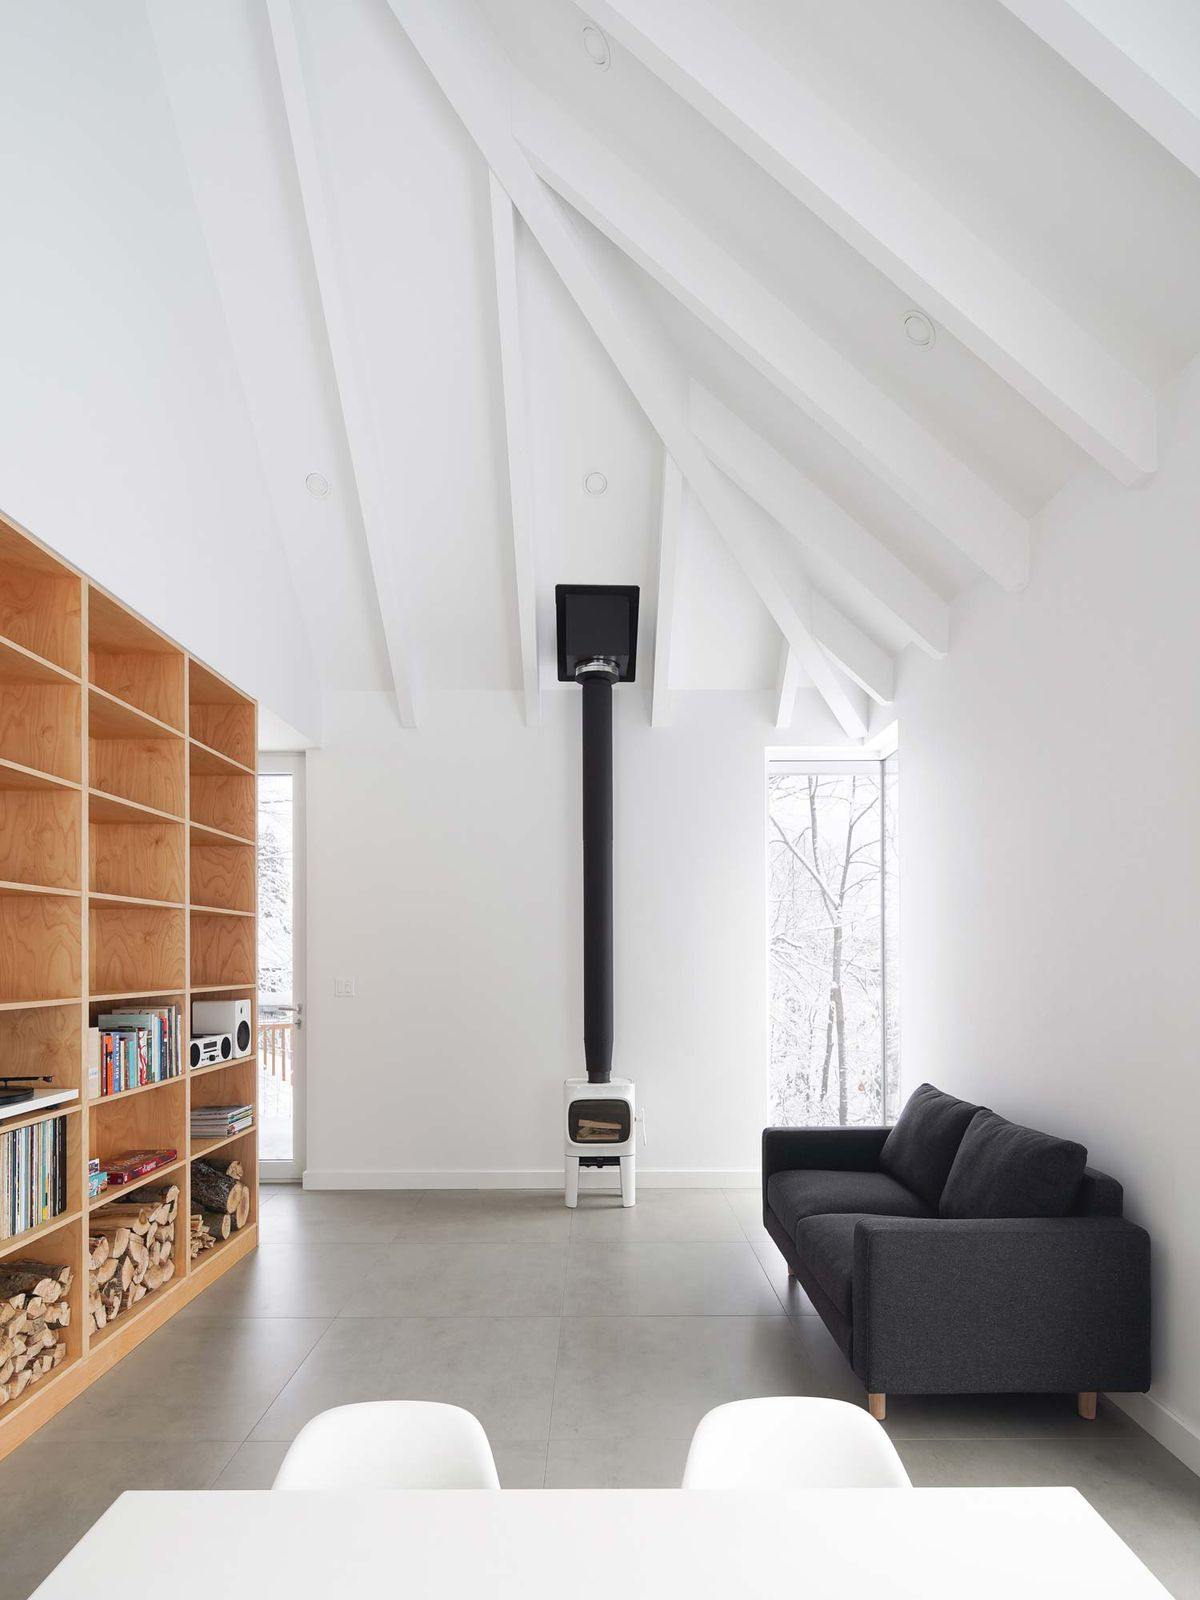 Living room with high ceilings and wooden shelf on one wall.